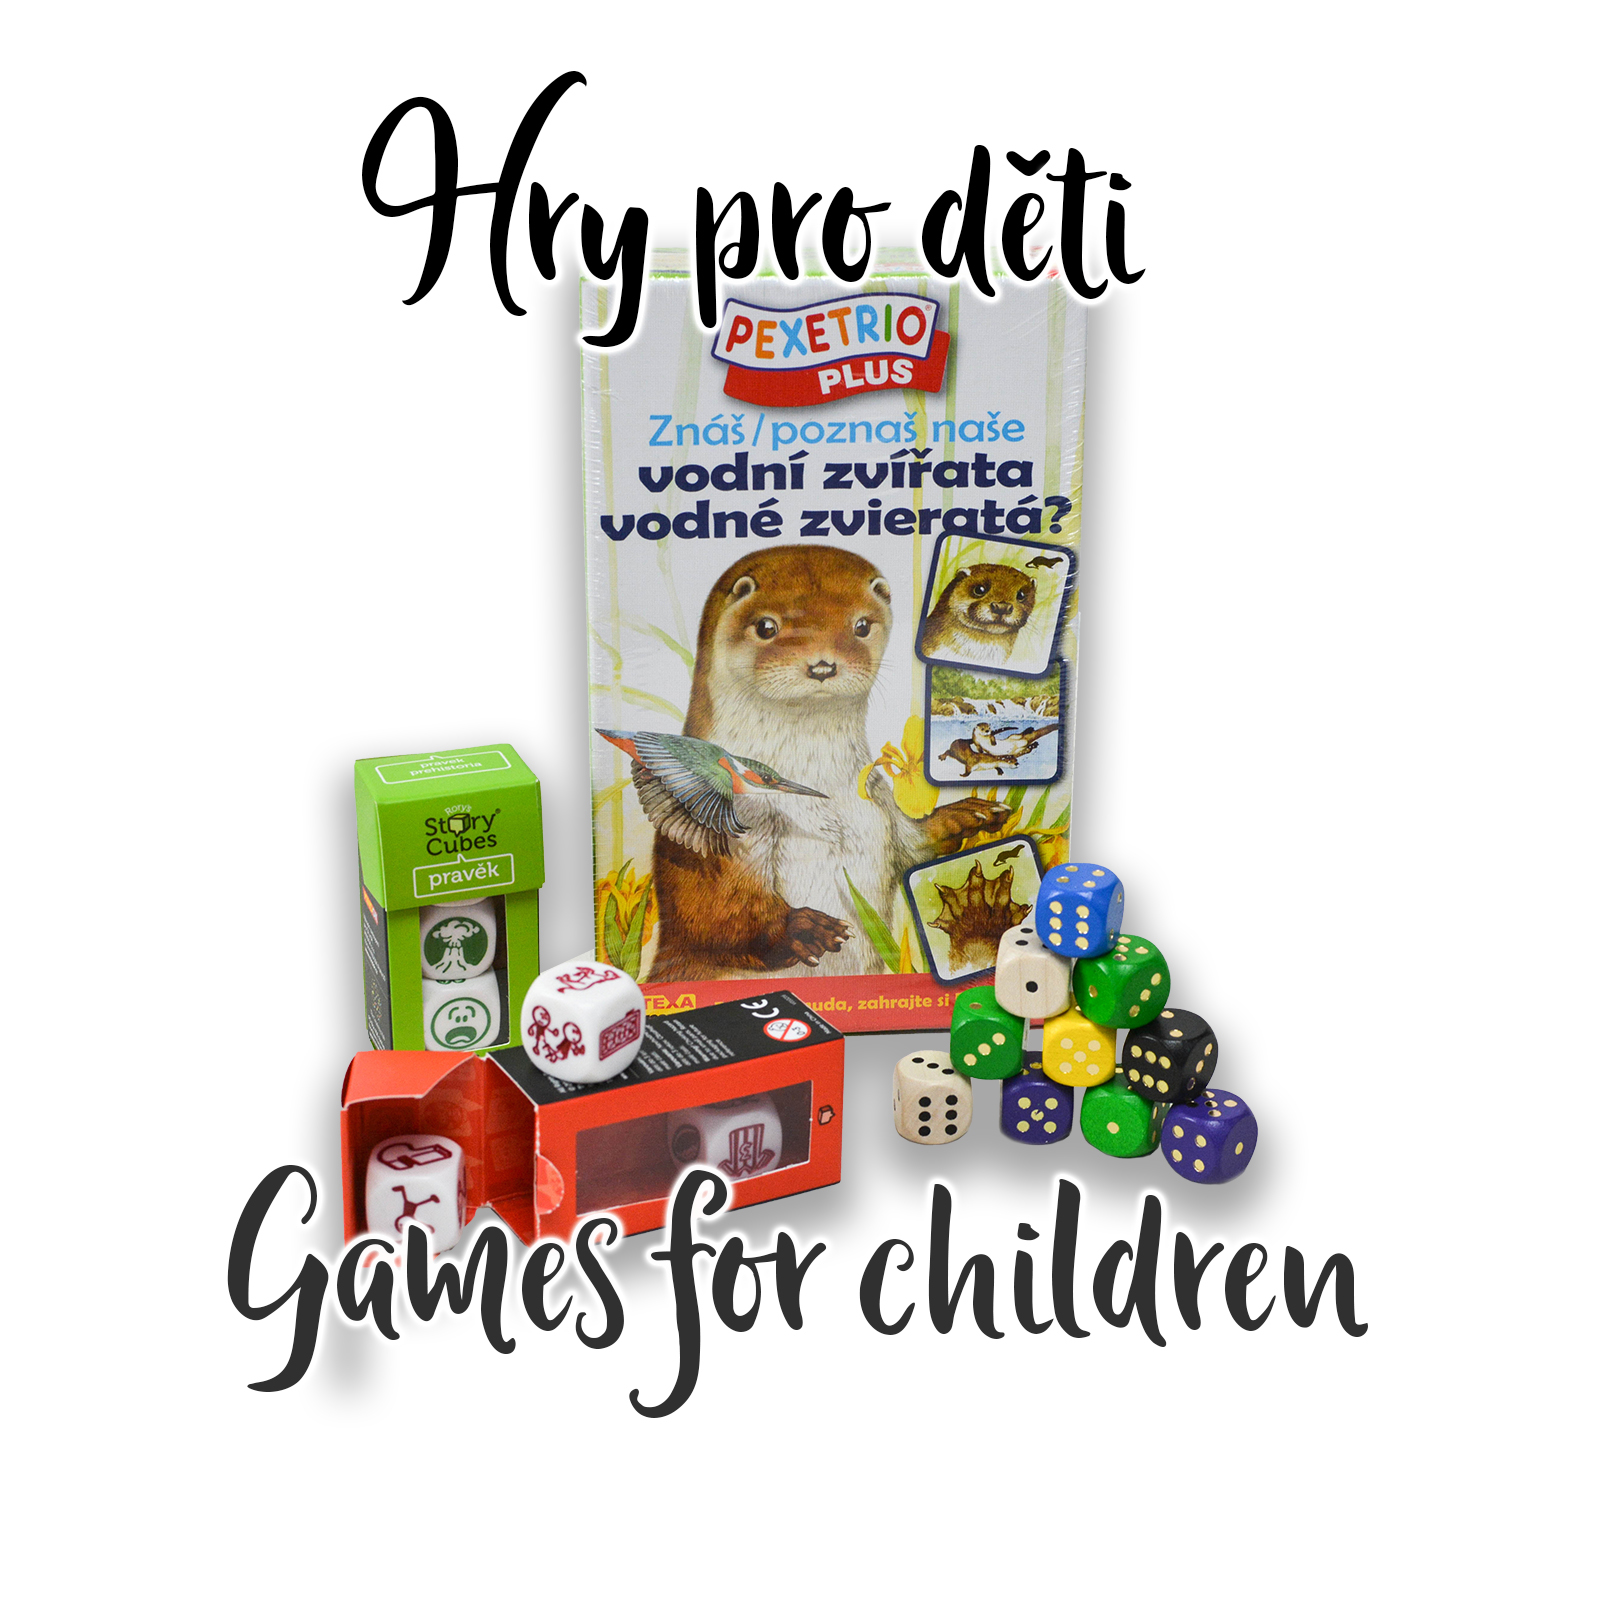 Hry pro děti (Games for children)